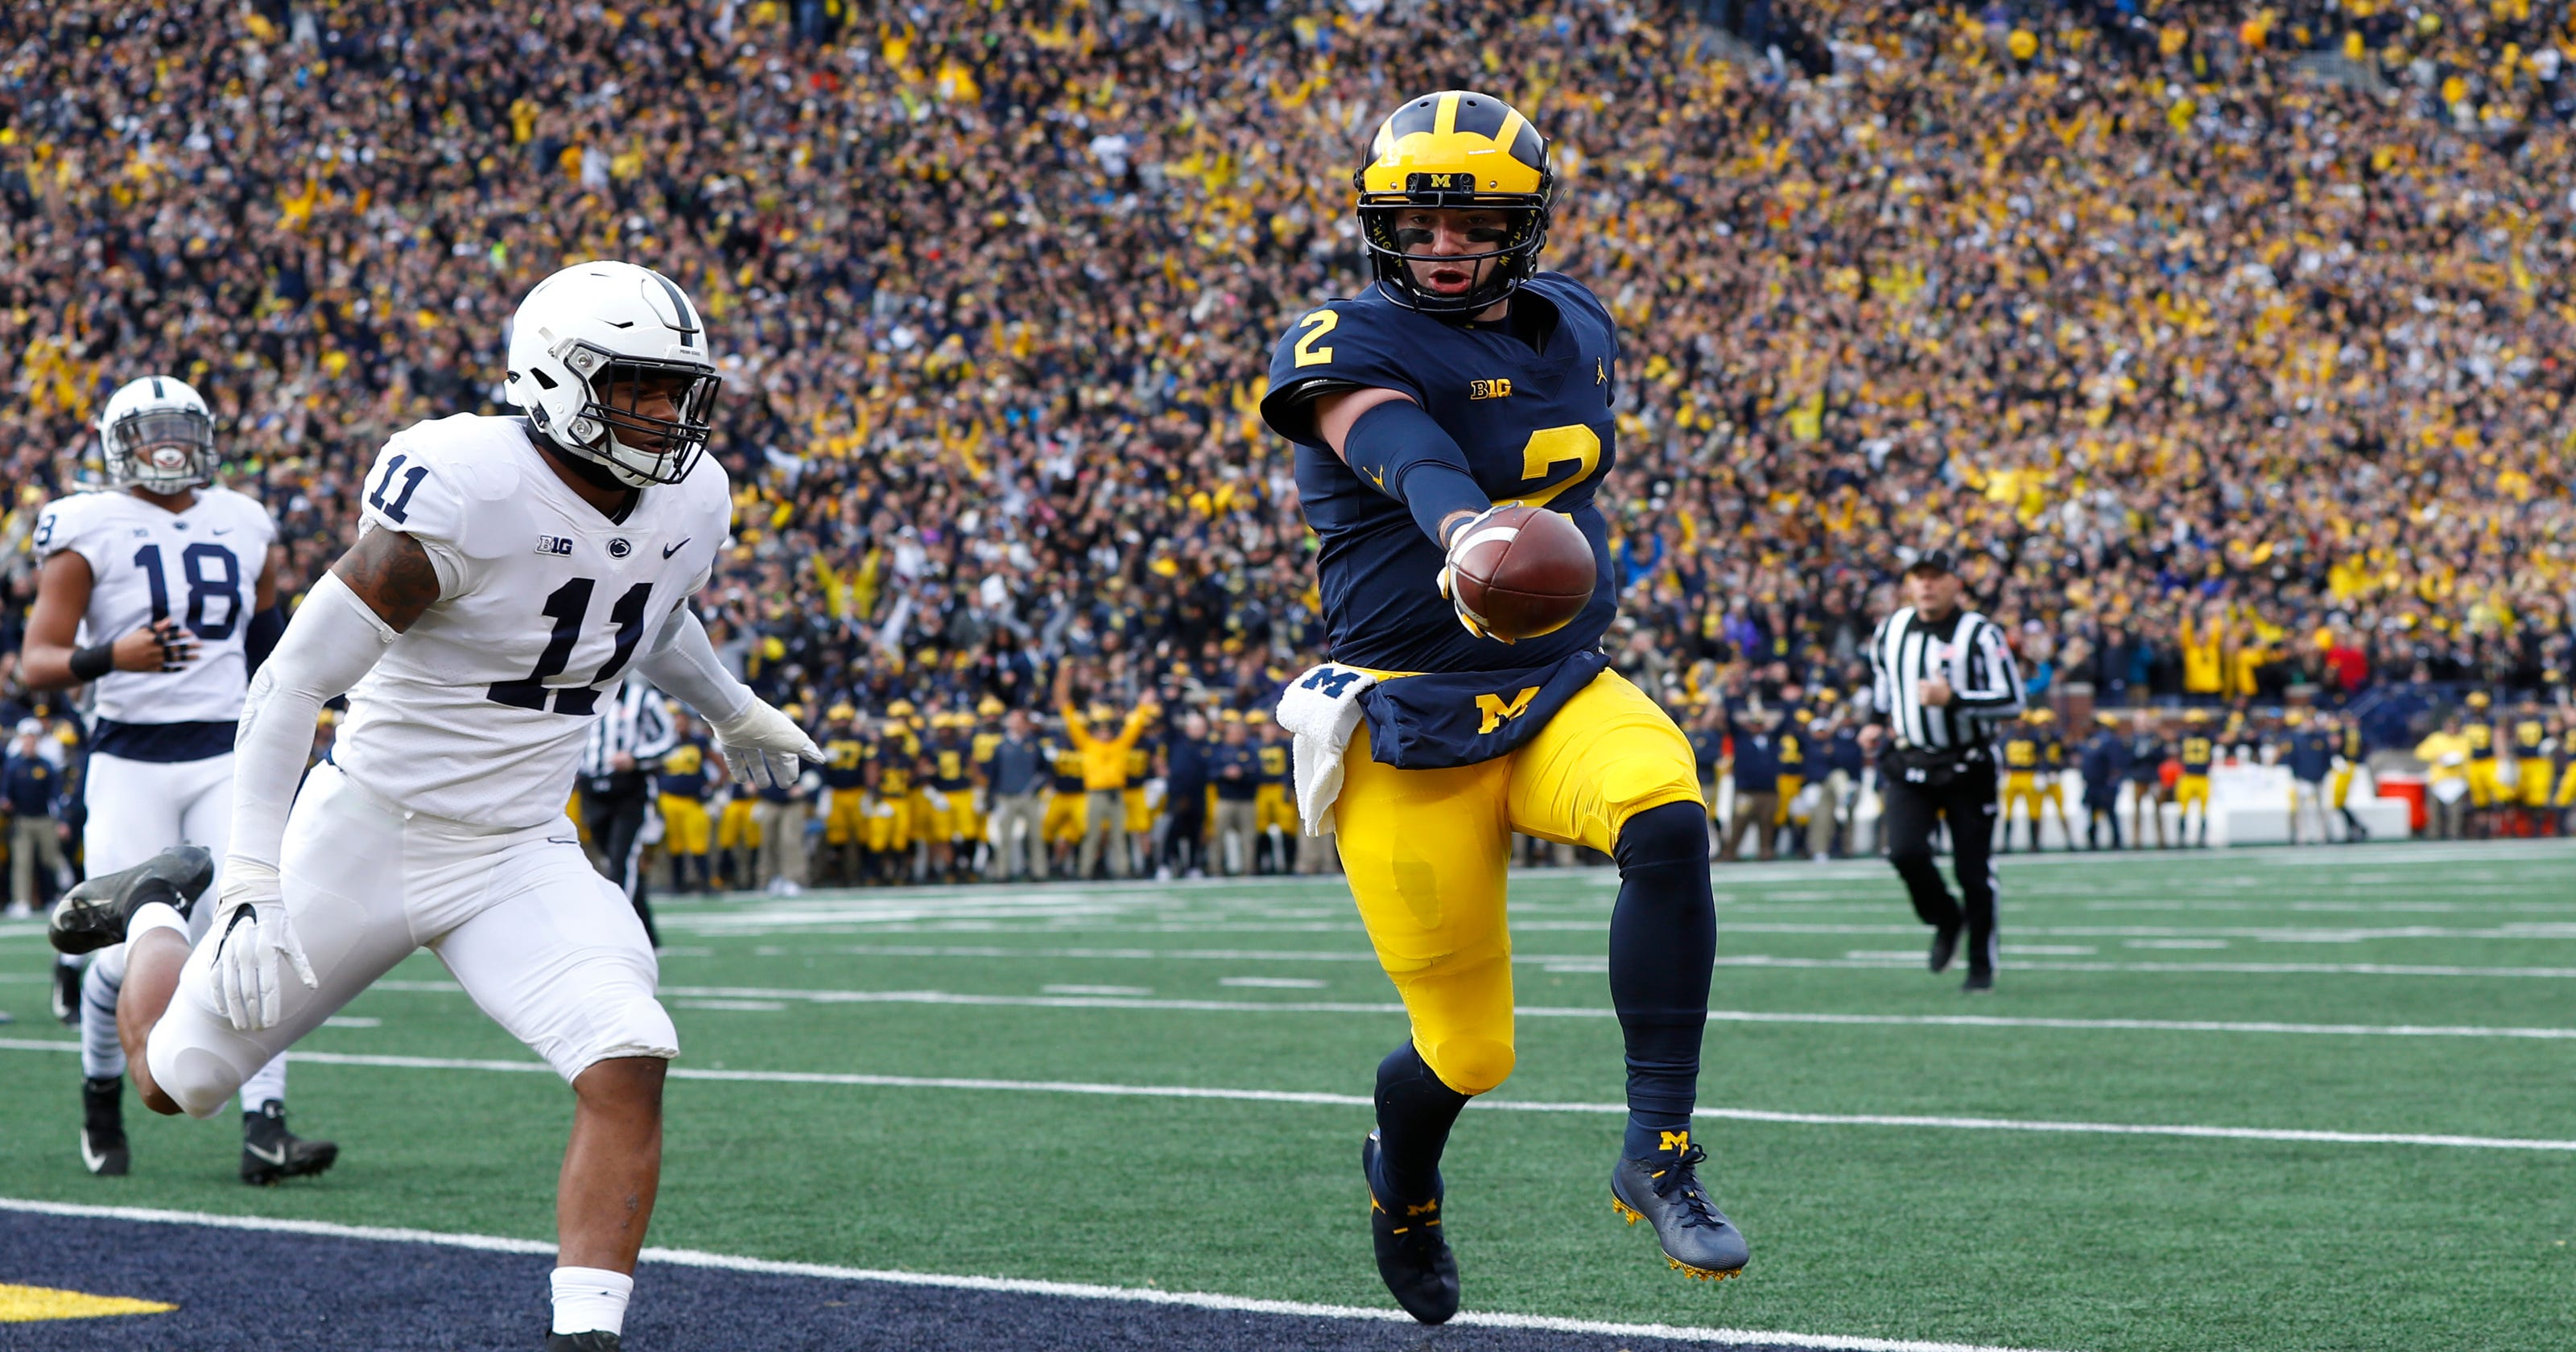 67310619fa0 Michigan football makes post-spring practice top 25 for 2019